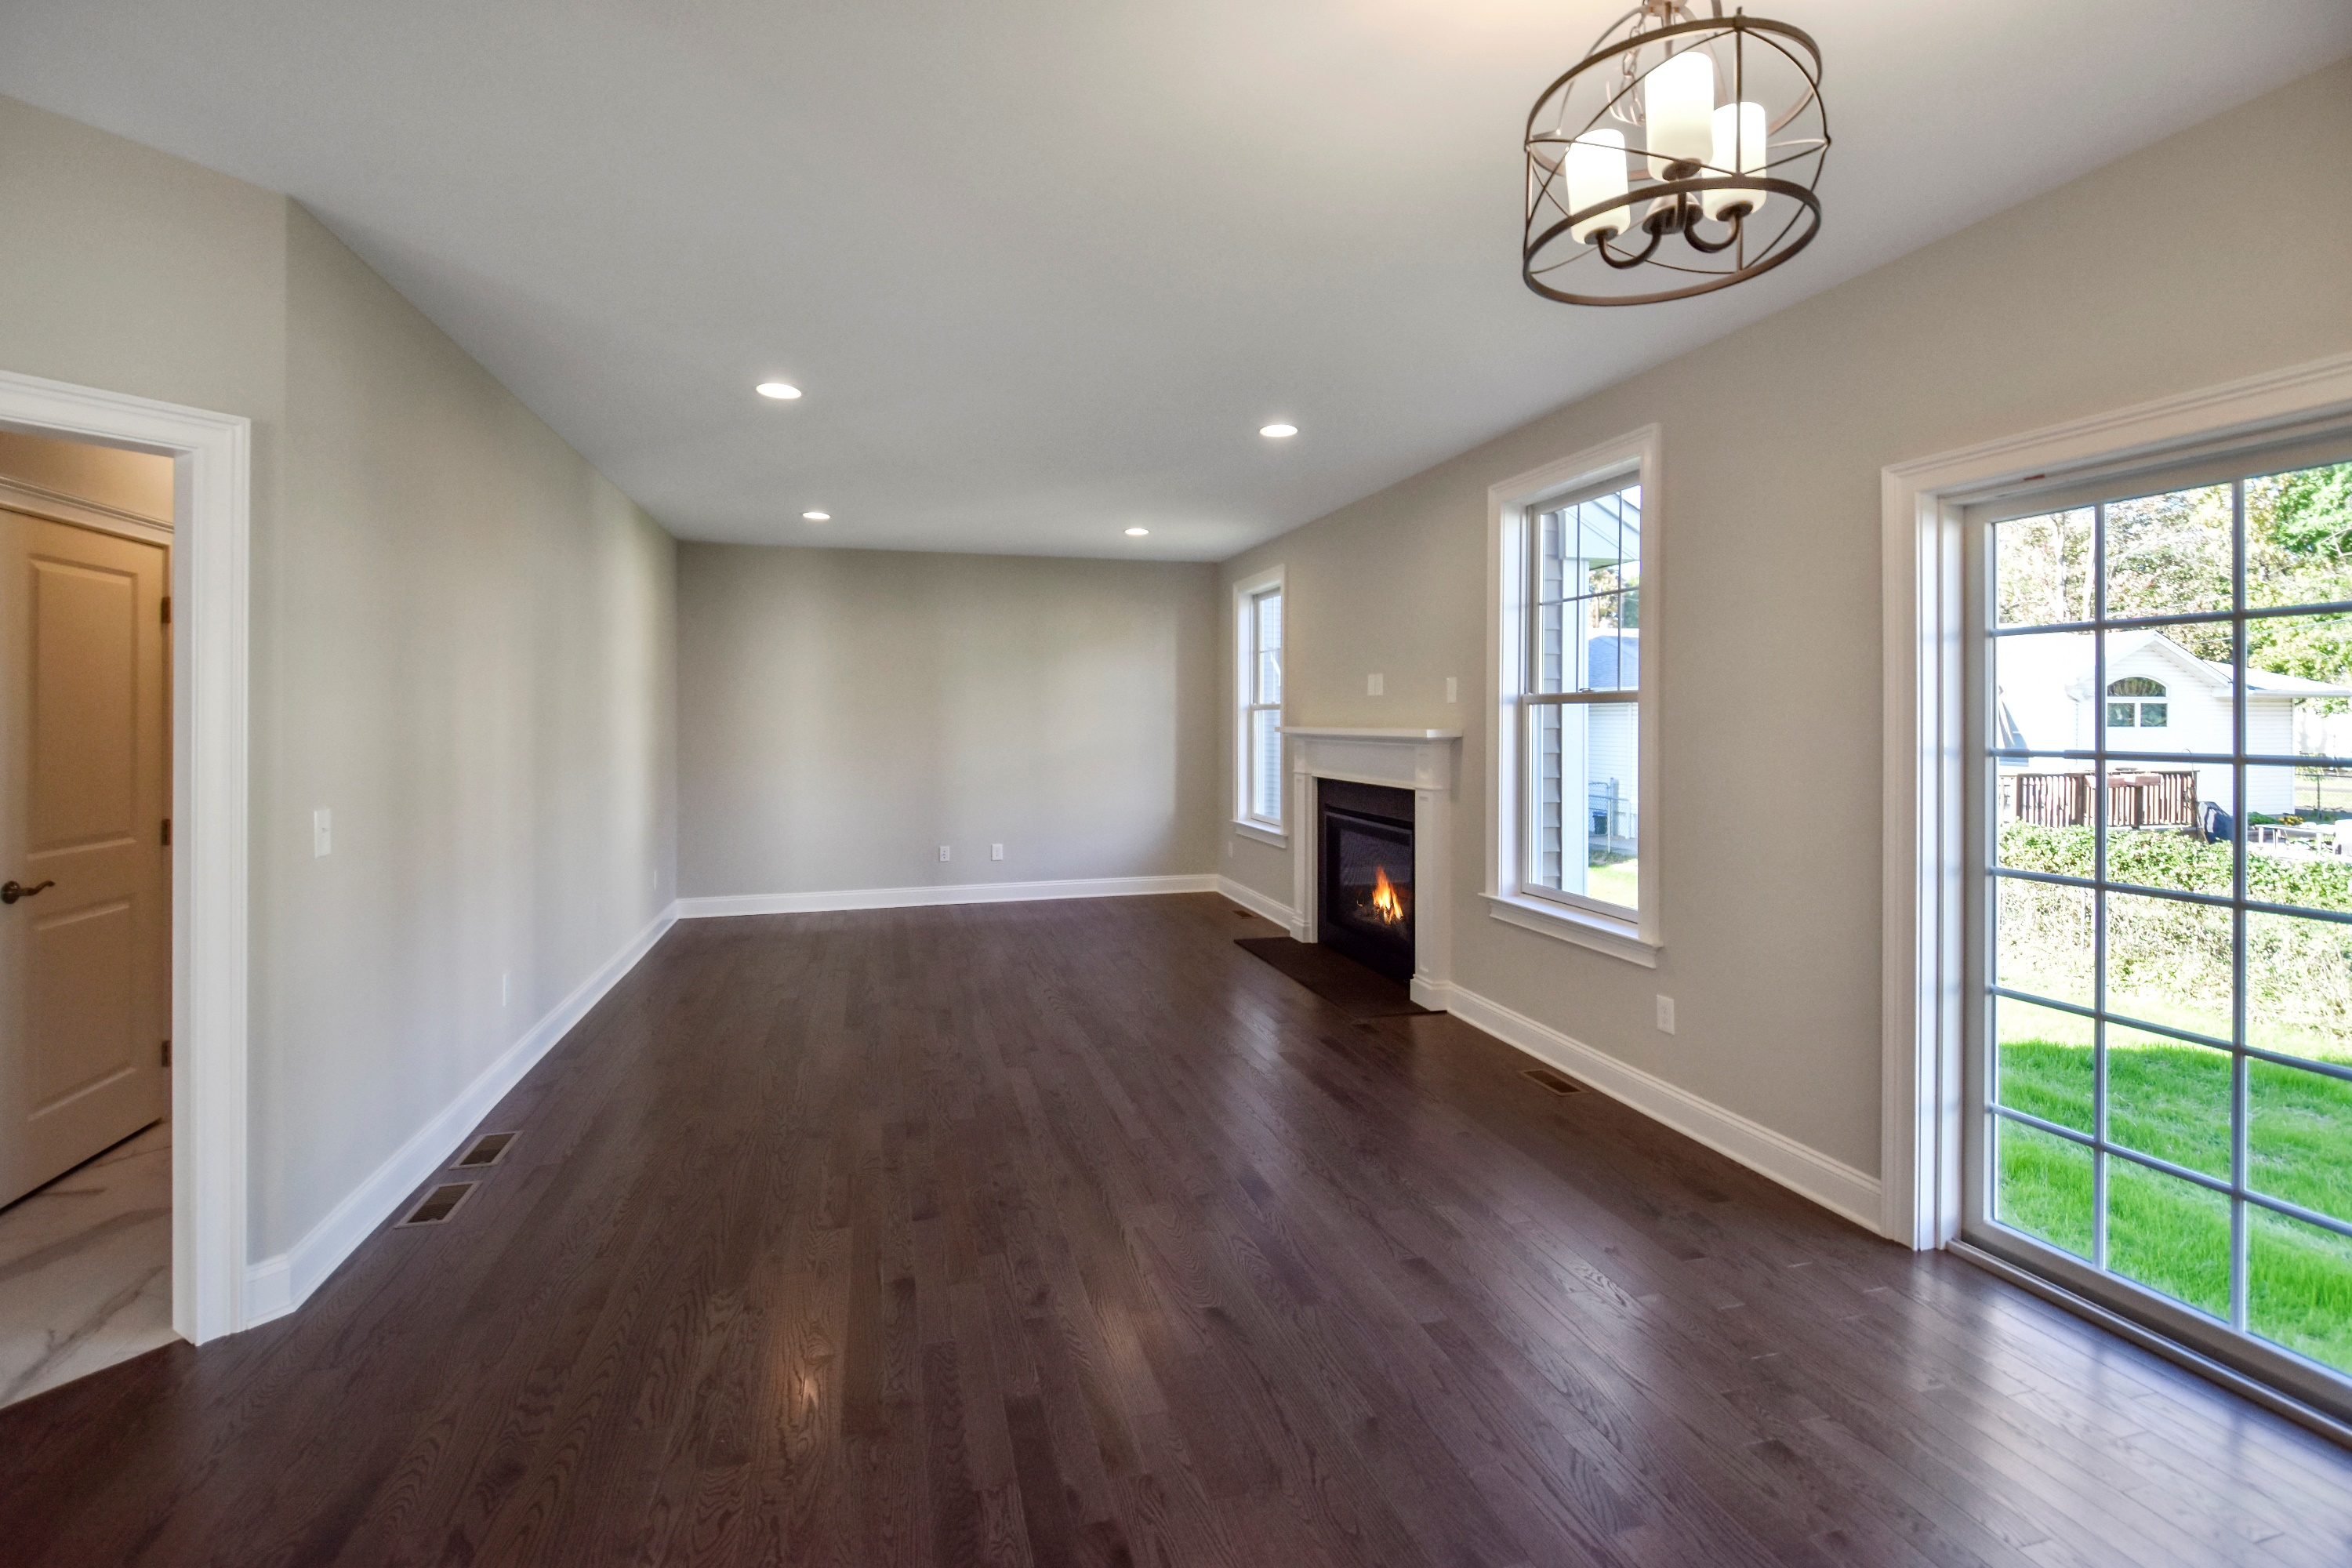 Country Classics at Scotch Plains 603 Taylors Way Family Room